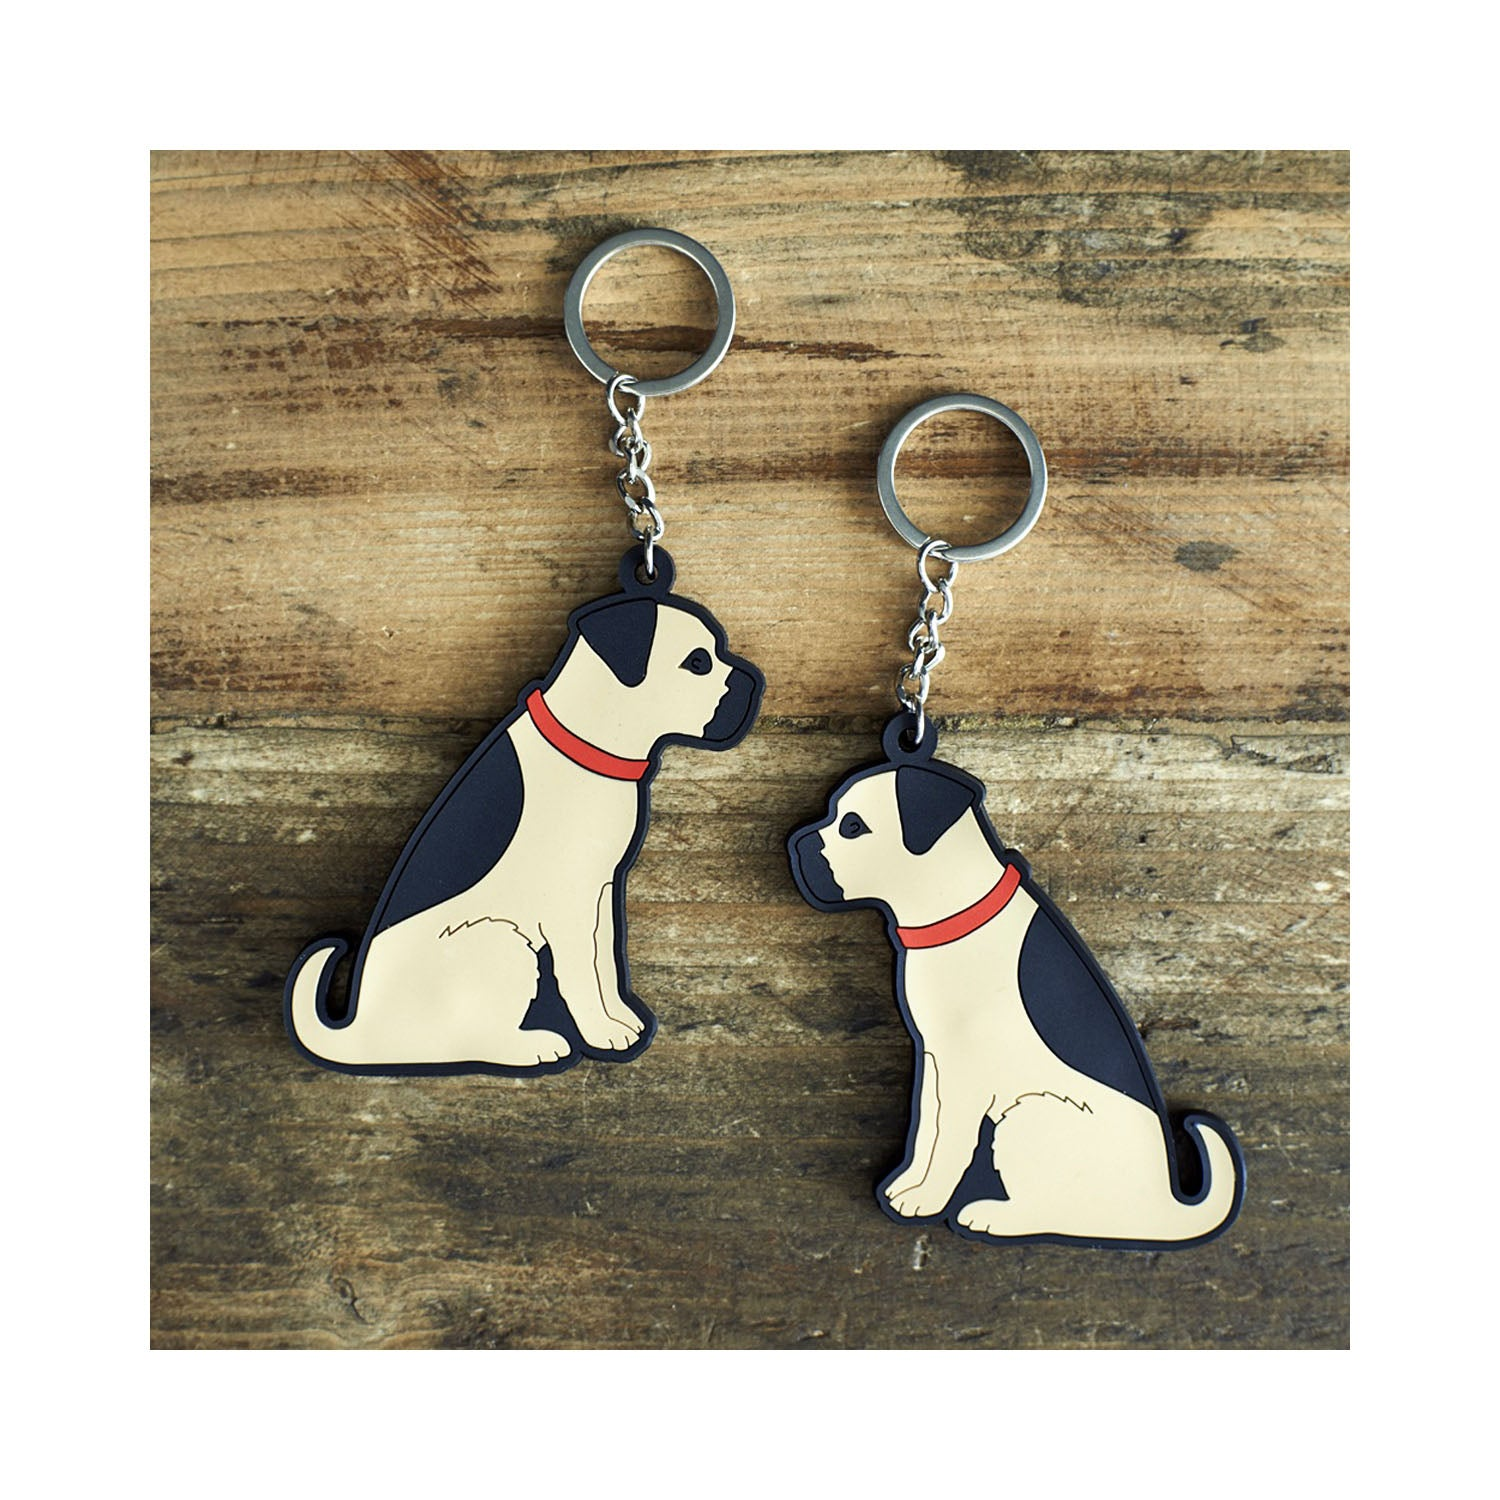 Dog Lover Gifts available at Dog Krazy Gifts - Bertie The Border Terrier Keyring - part of the Sweet William range of gifts for dog lovers available from Dog Krazy Gifts